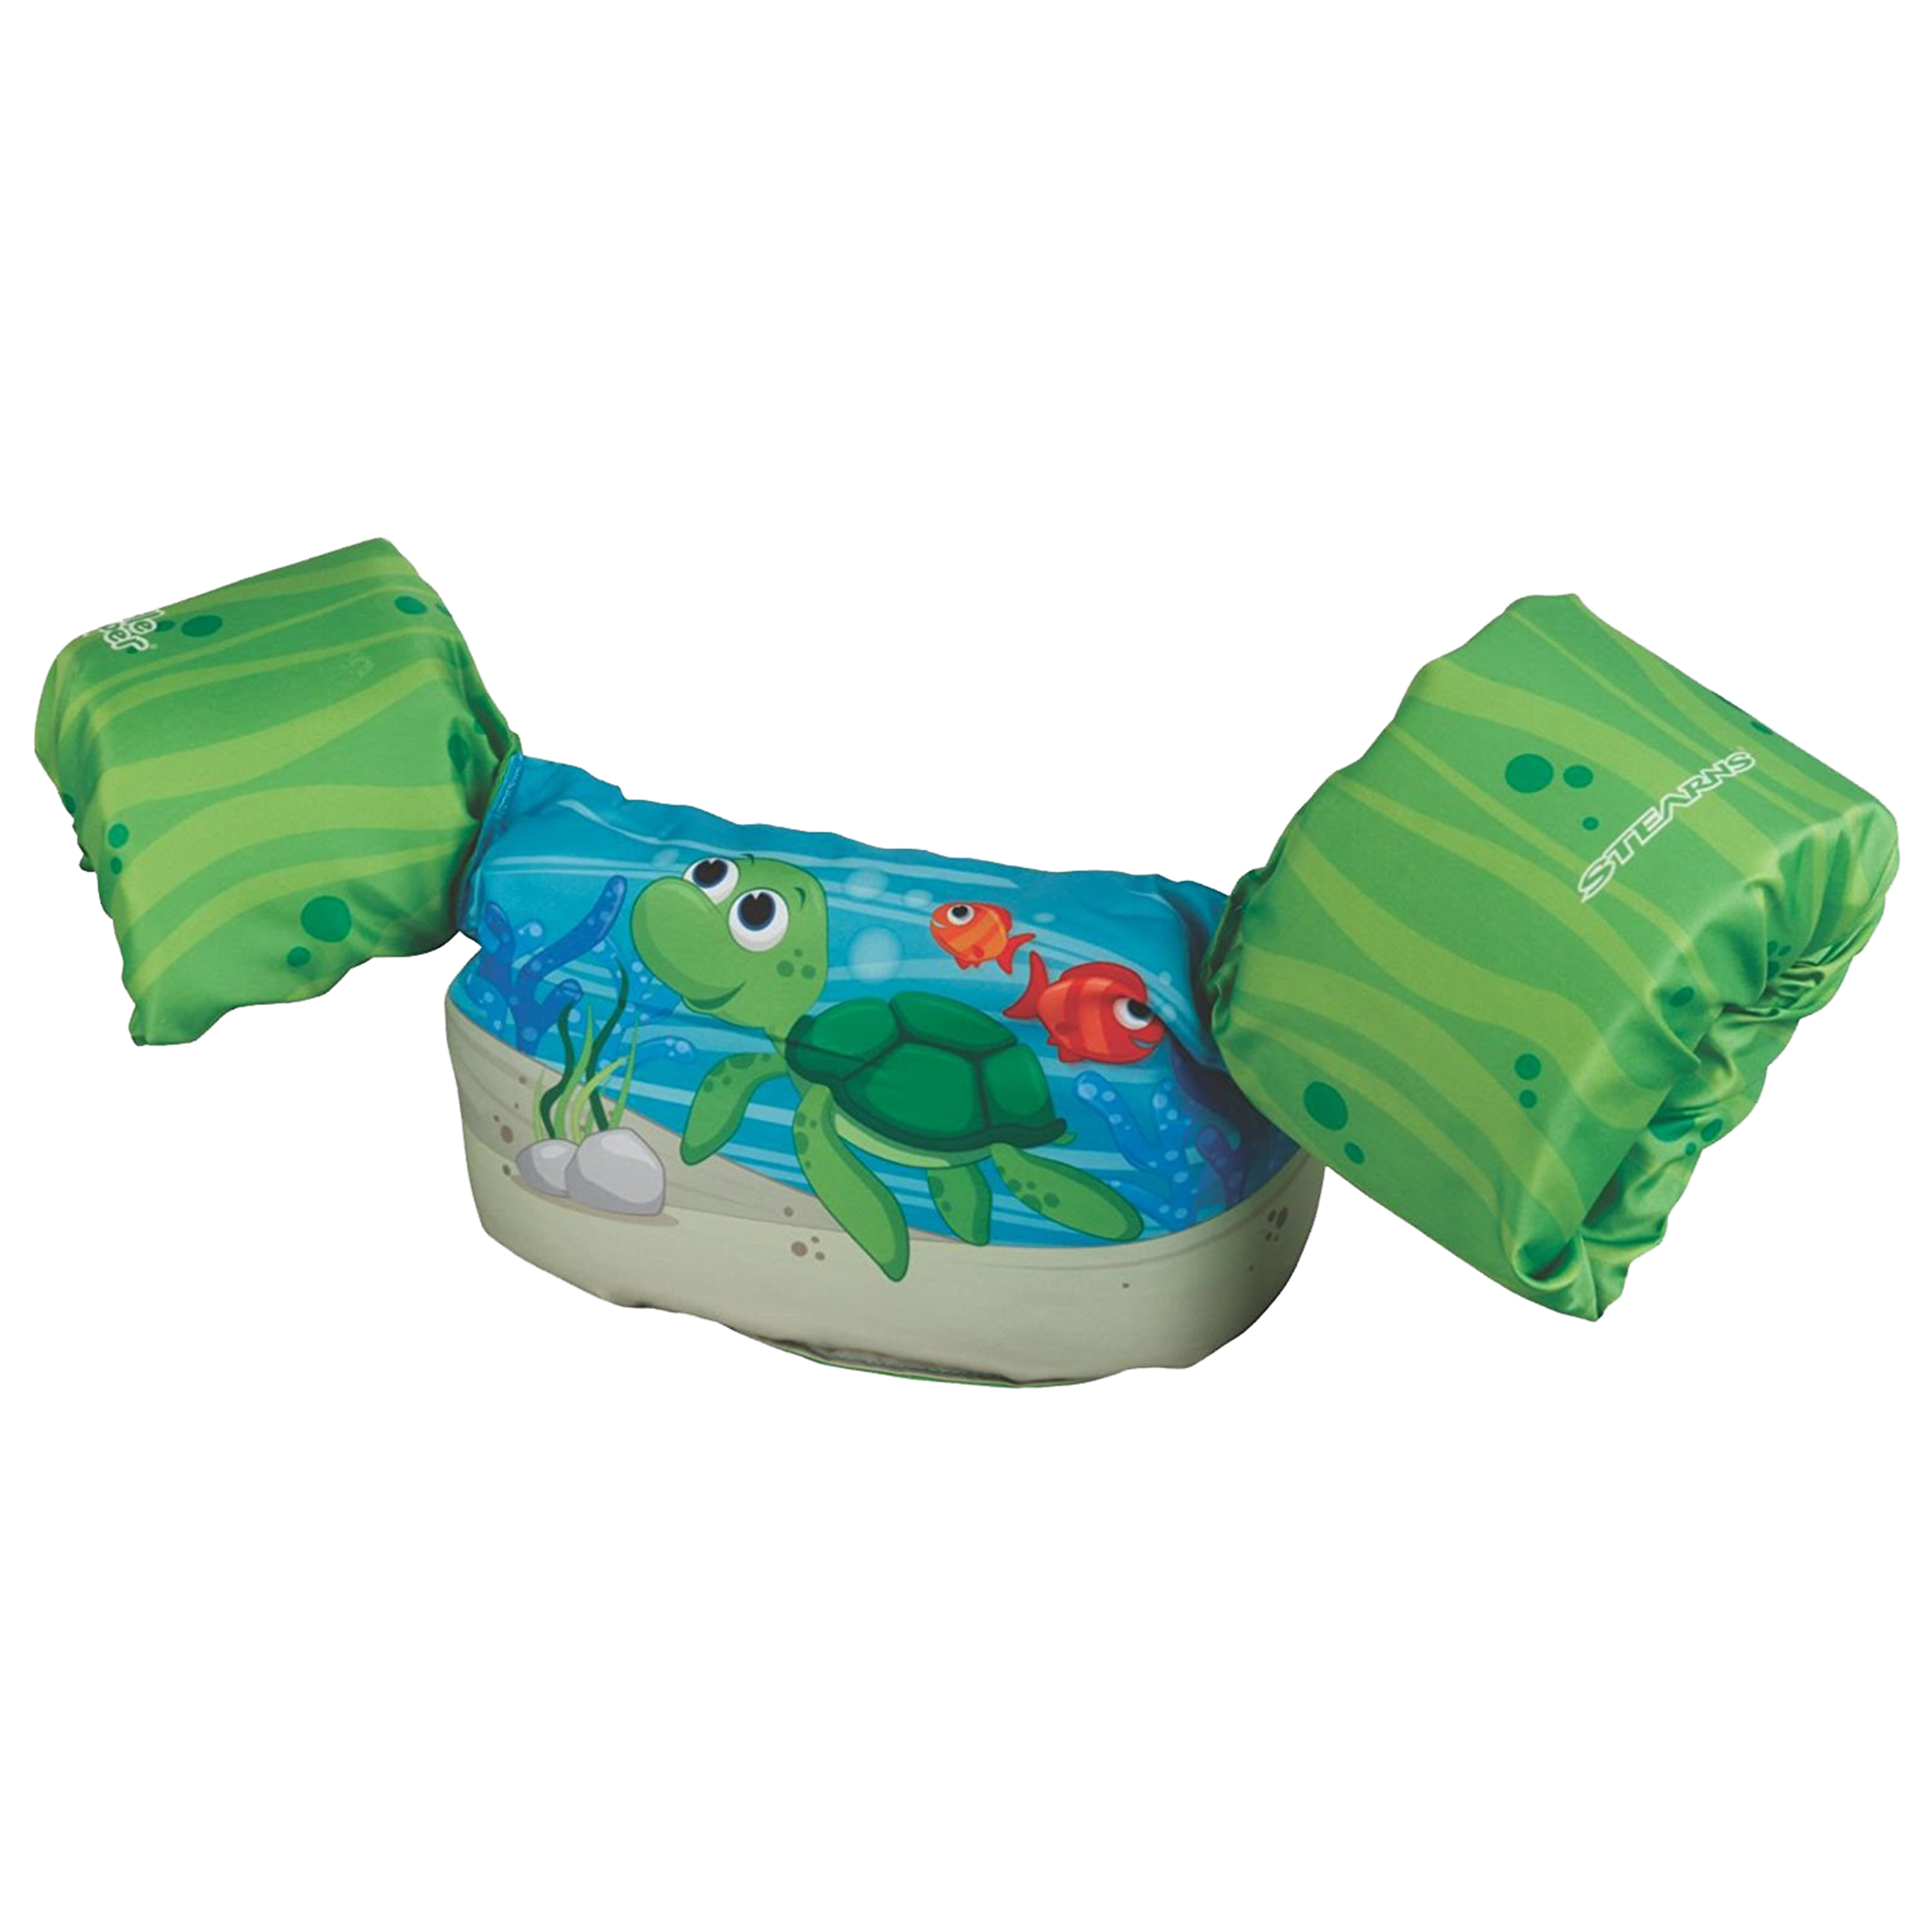 Stearns Puddle Jumper Deluxe Life Jacket Turtle by Stearns